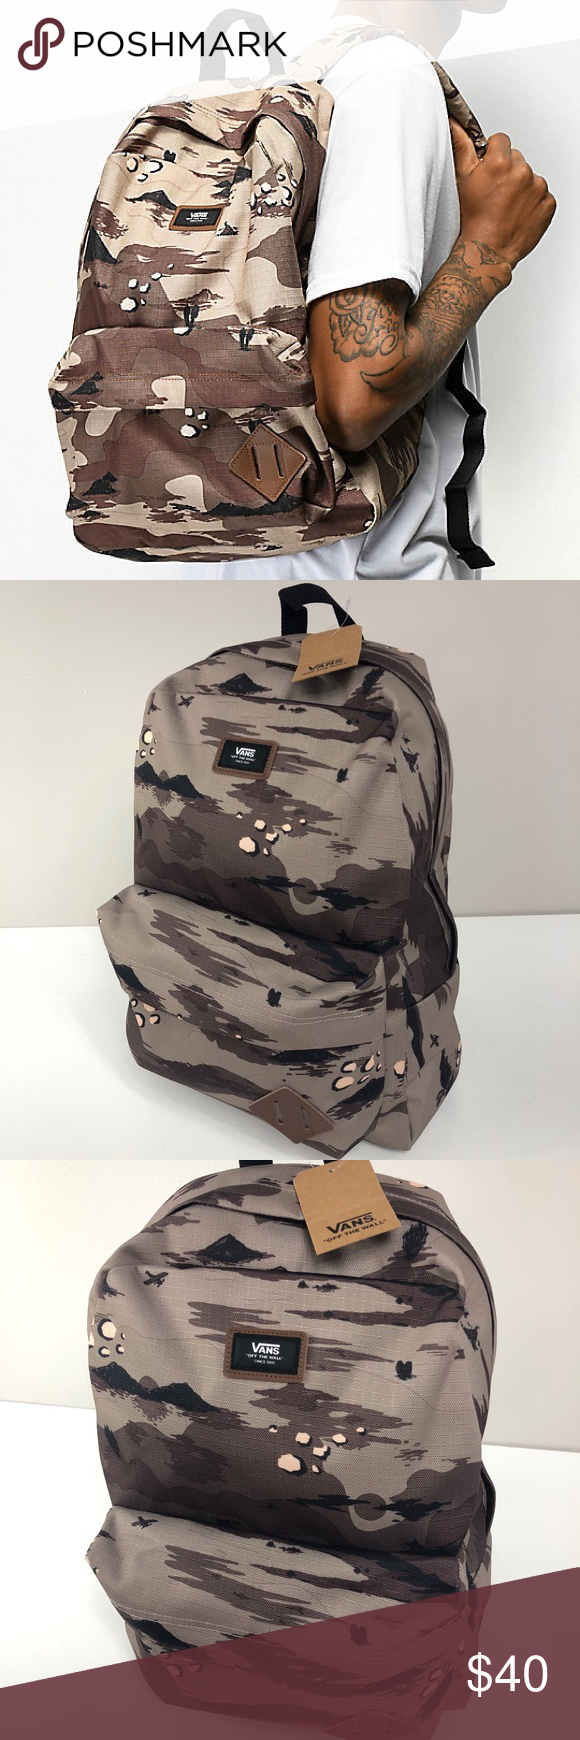 7afe4ef2753 NWT Vans Old Skool II Storm Camo Backpack NWT Vans Old Skool II Storm Camo  Backpack